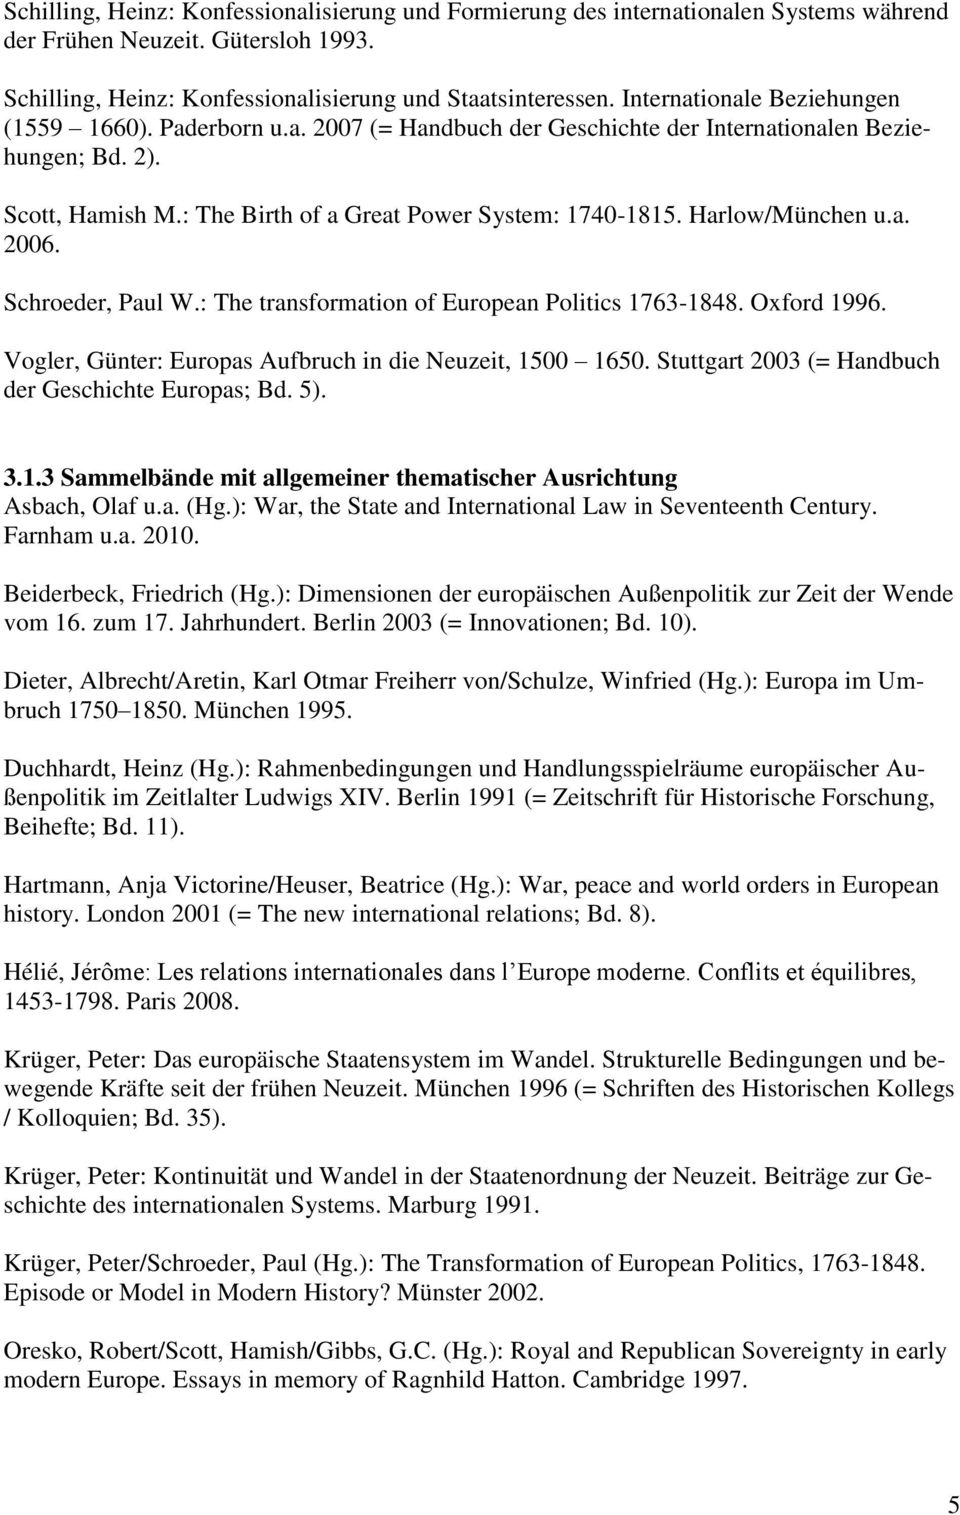 Harlow/München u.a. 2006. Schroeder, Paul W.: The transformation of European Politics 1763-1848. Oxford 1996. Vogler, Günter: Europas Aufbruch in die Neuzeit, 1500 1650.